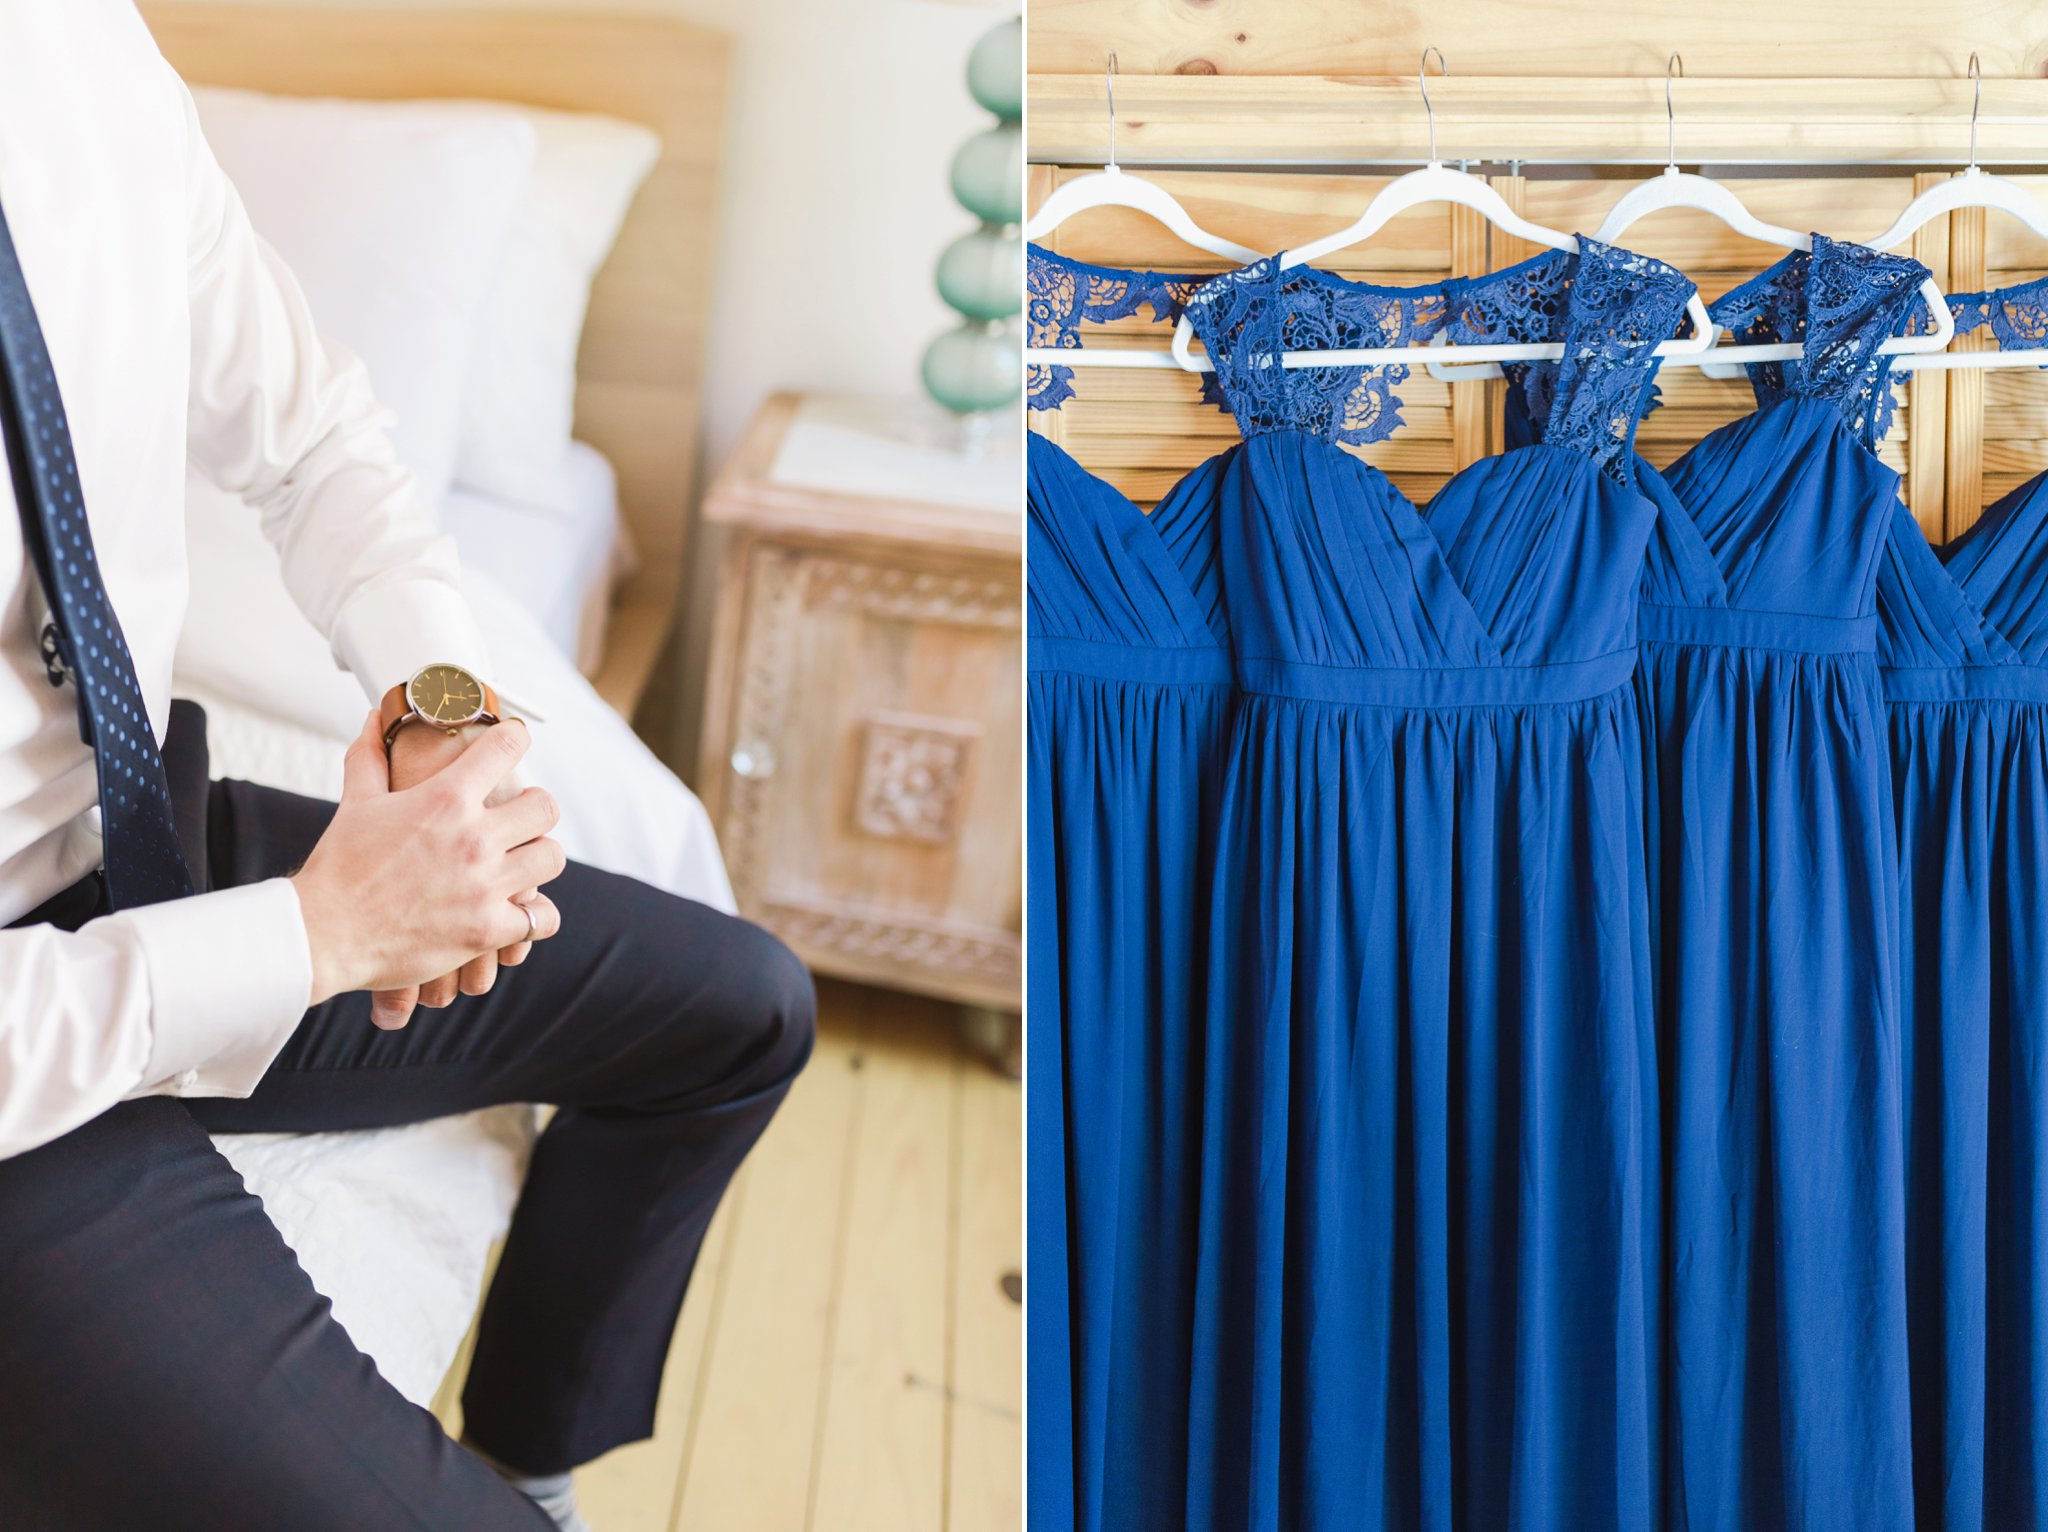 Navy bridesmaids dresses at the Winter wedding at Le Belvedere